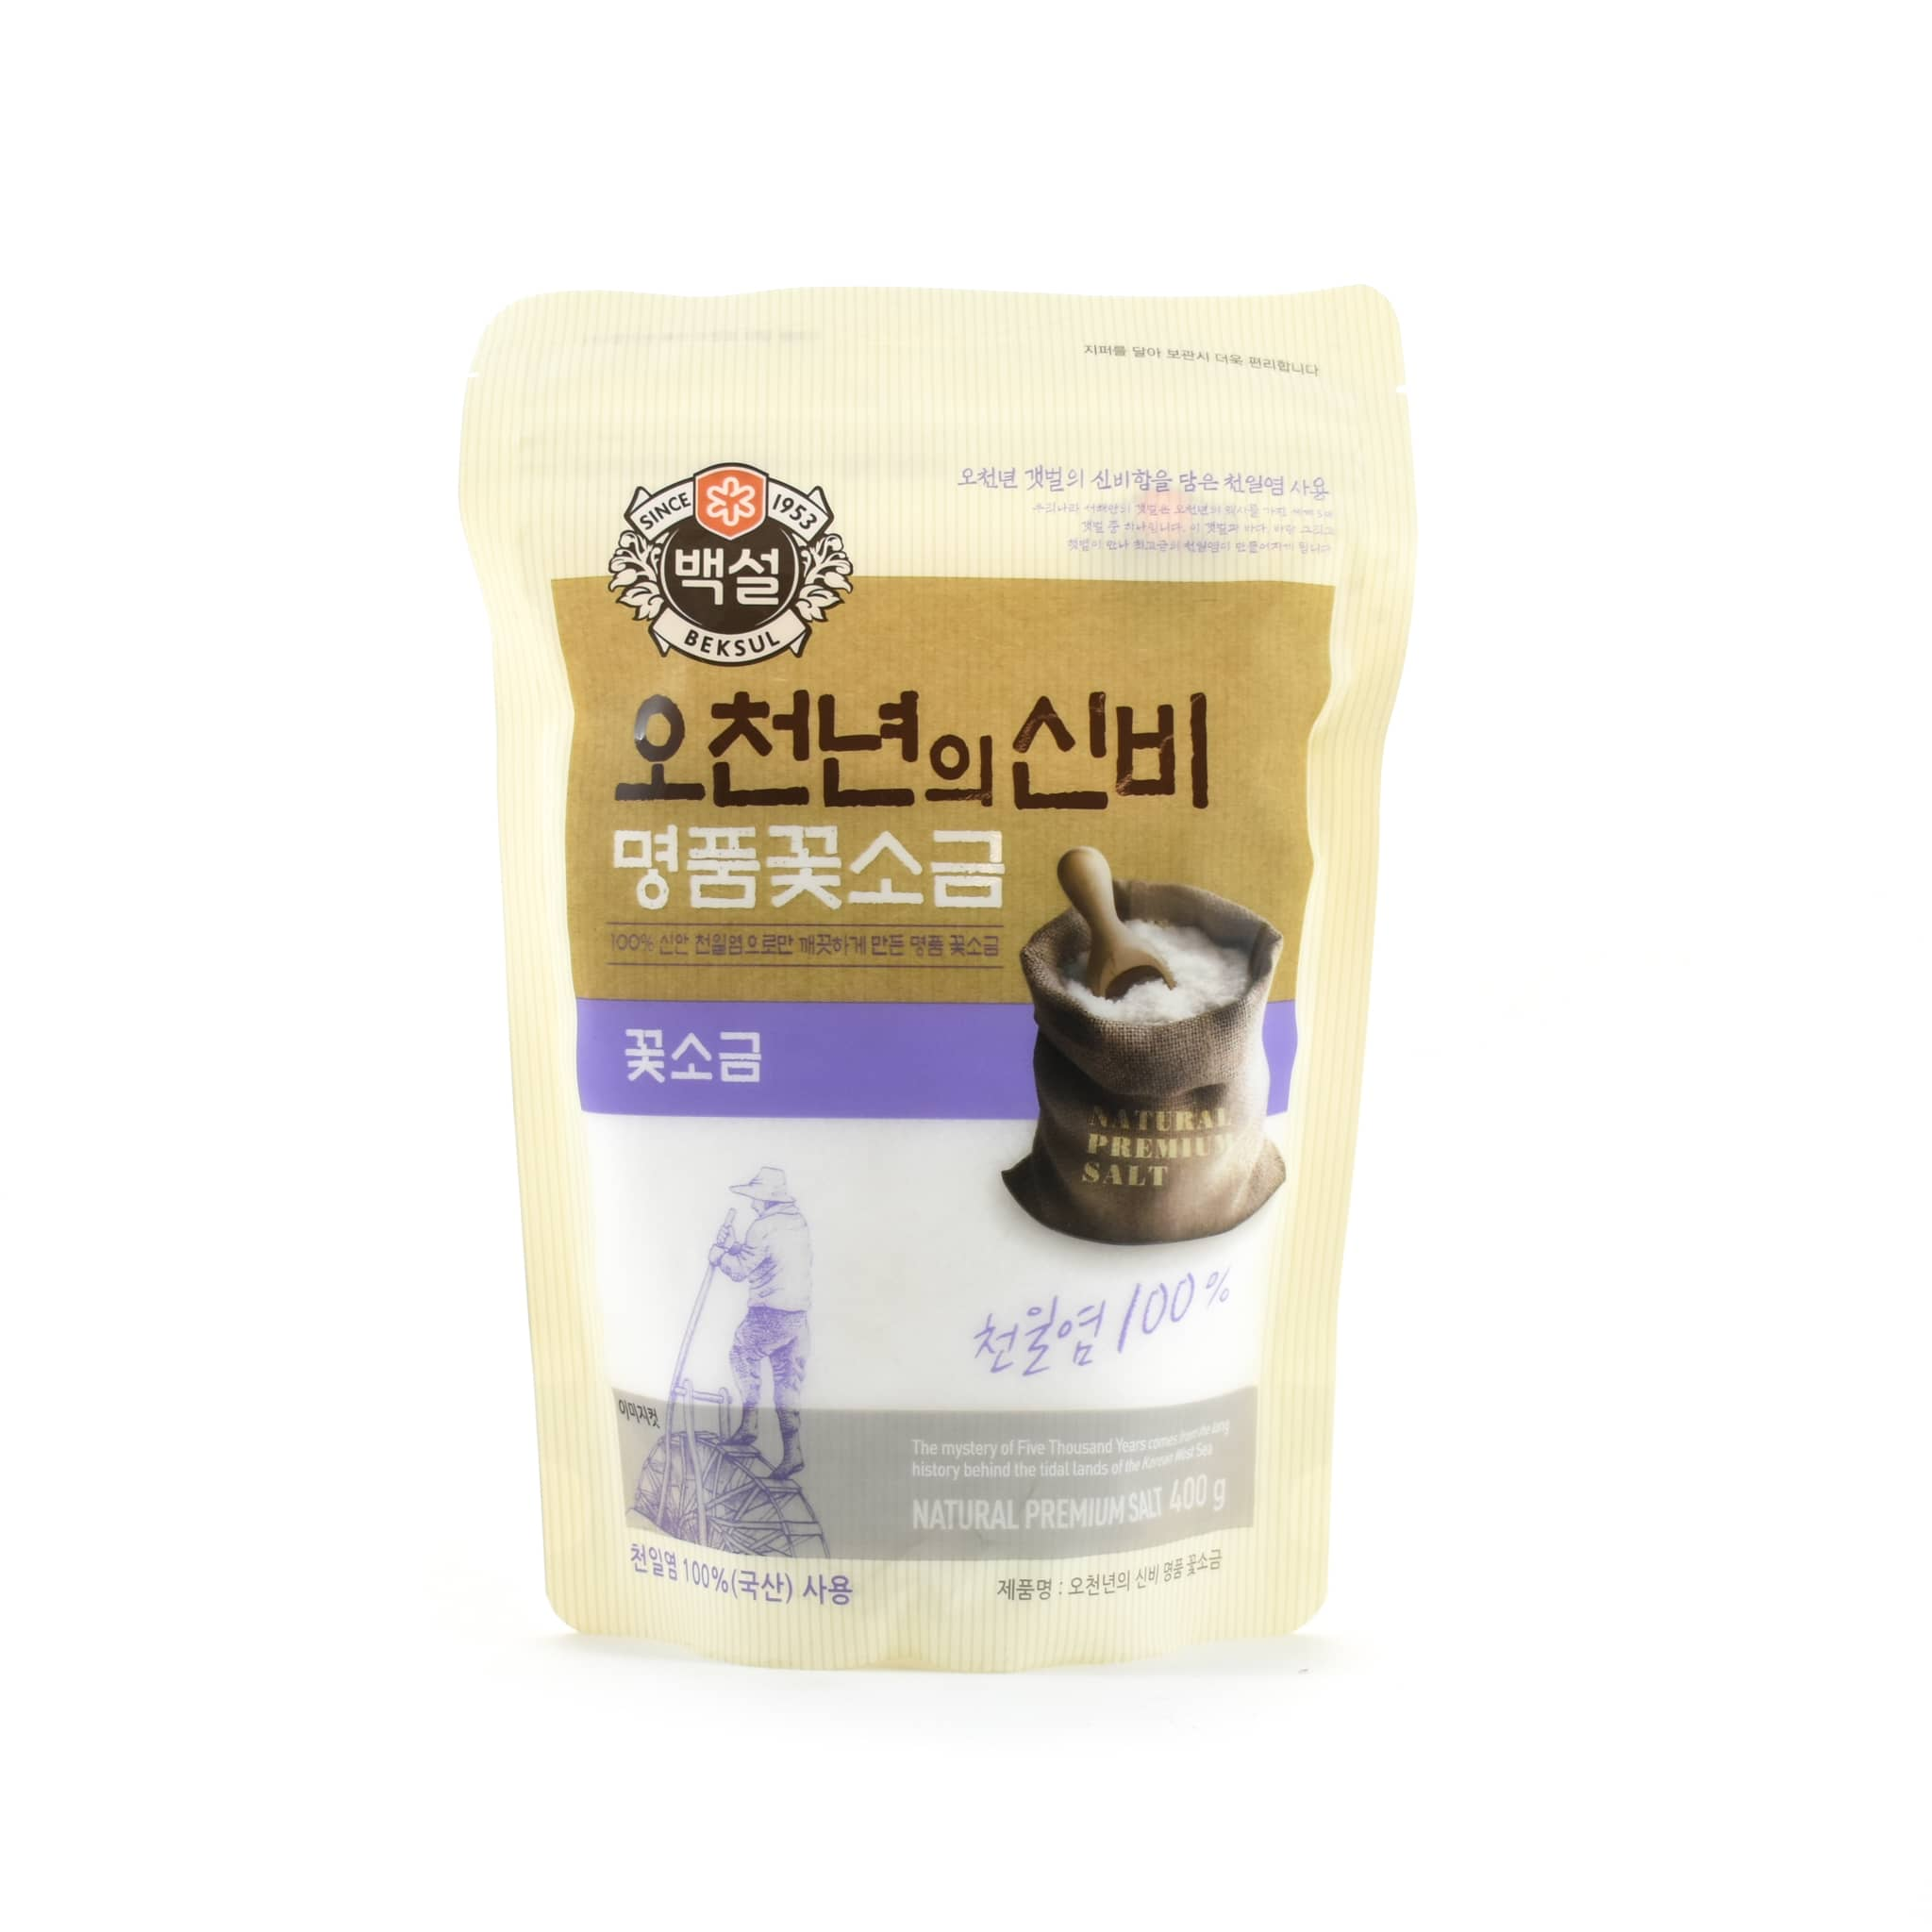 Korean Solar Sea Salt Flakes 400g